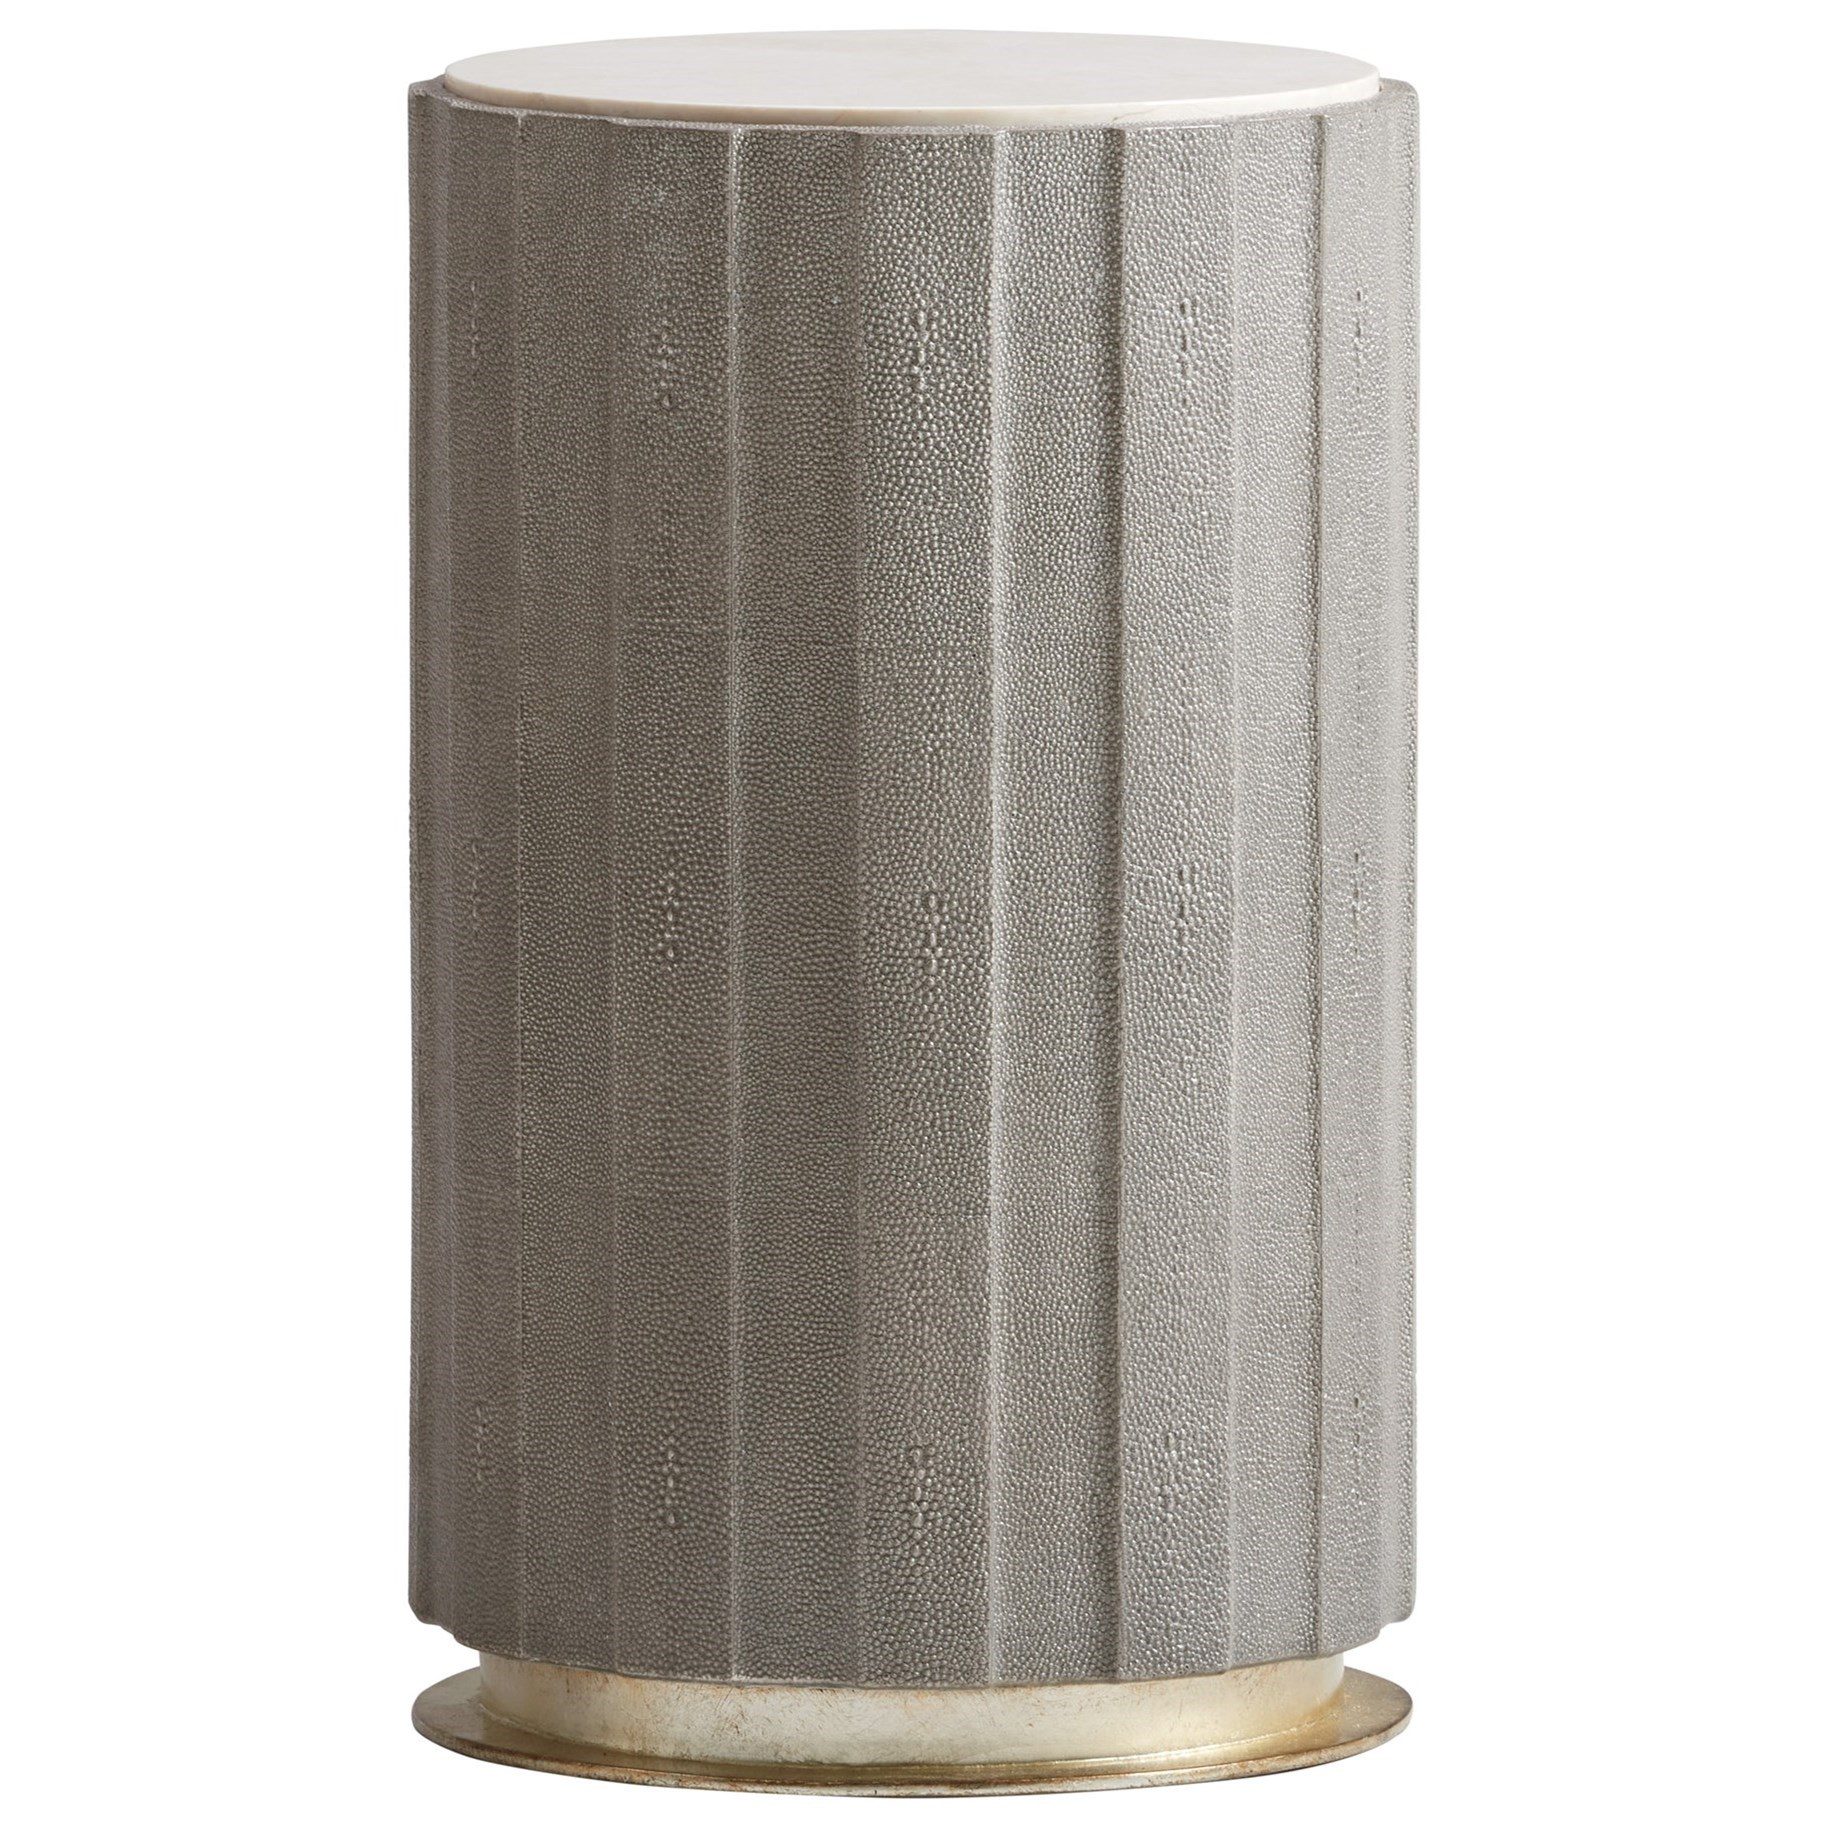 Carlyle Chelsea Taupe Shagreen Accent Table by Lexington at Baer's Furniture